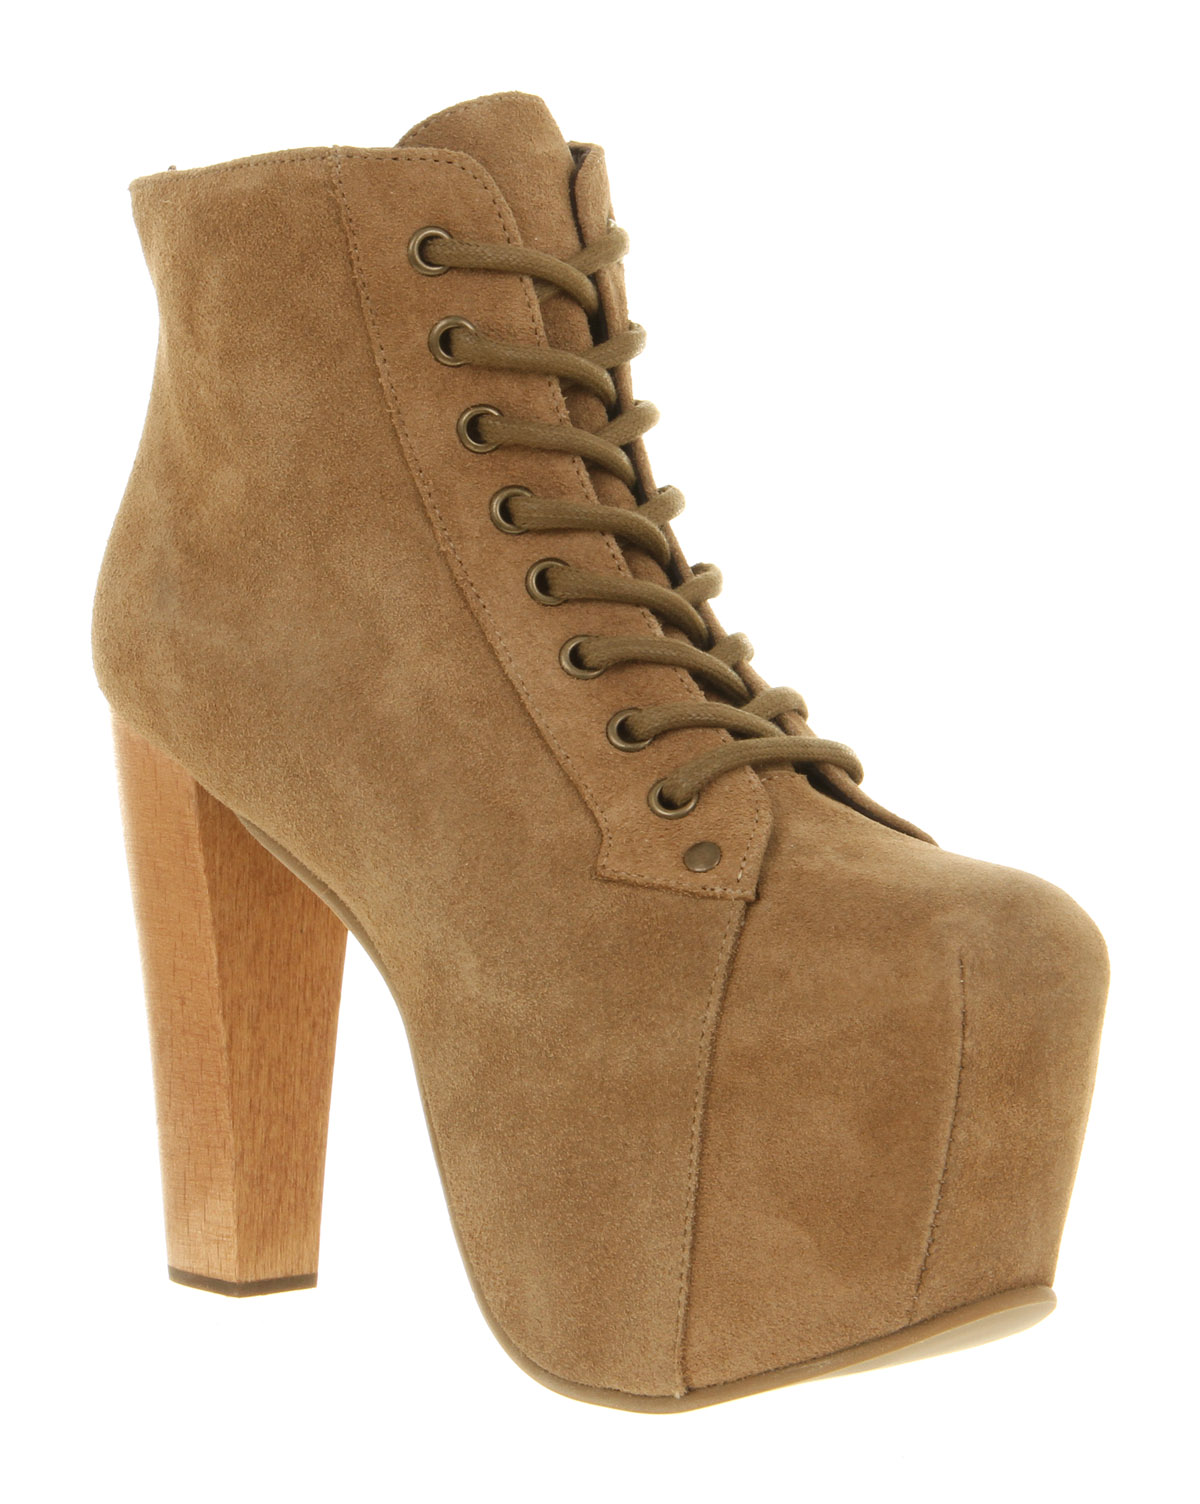 Womens-Jeffrey-Campbell-Lita-Platform-Ankle-Boot-Taupe-Suede-Boots